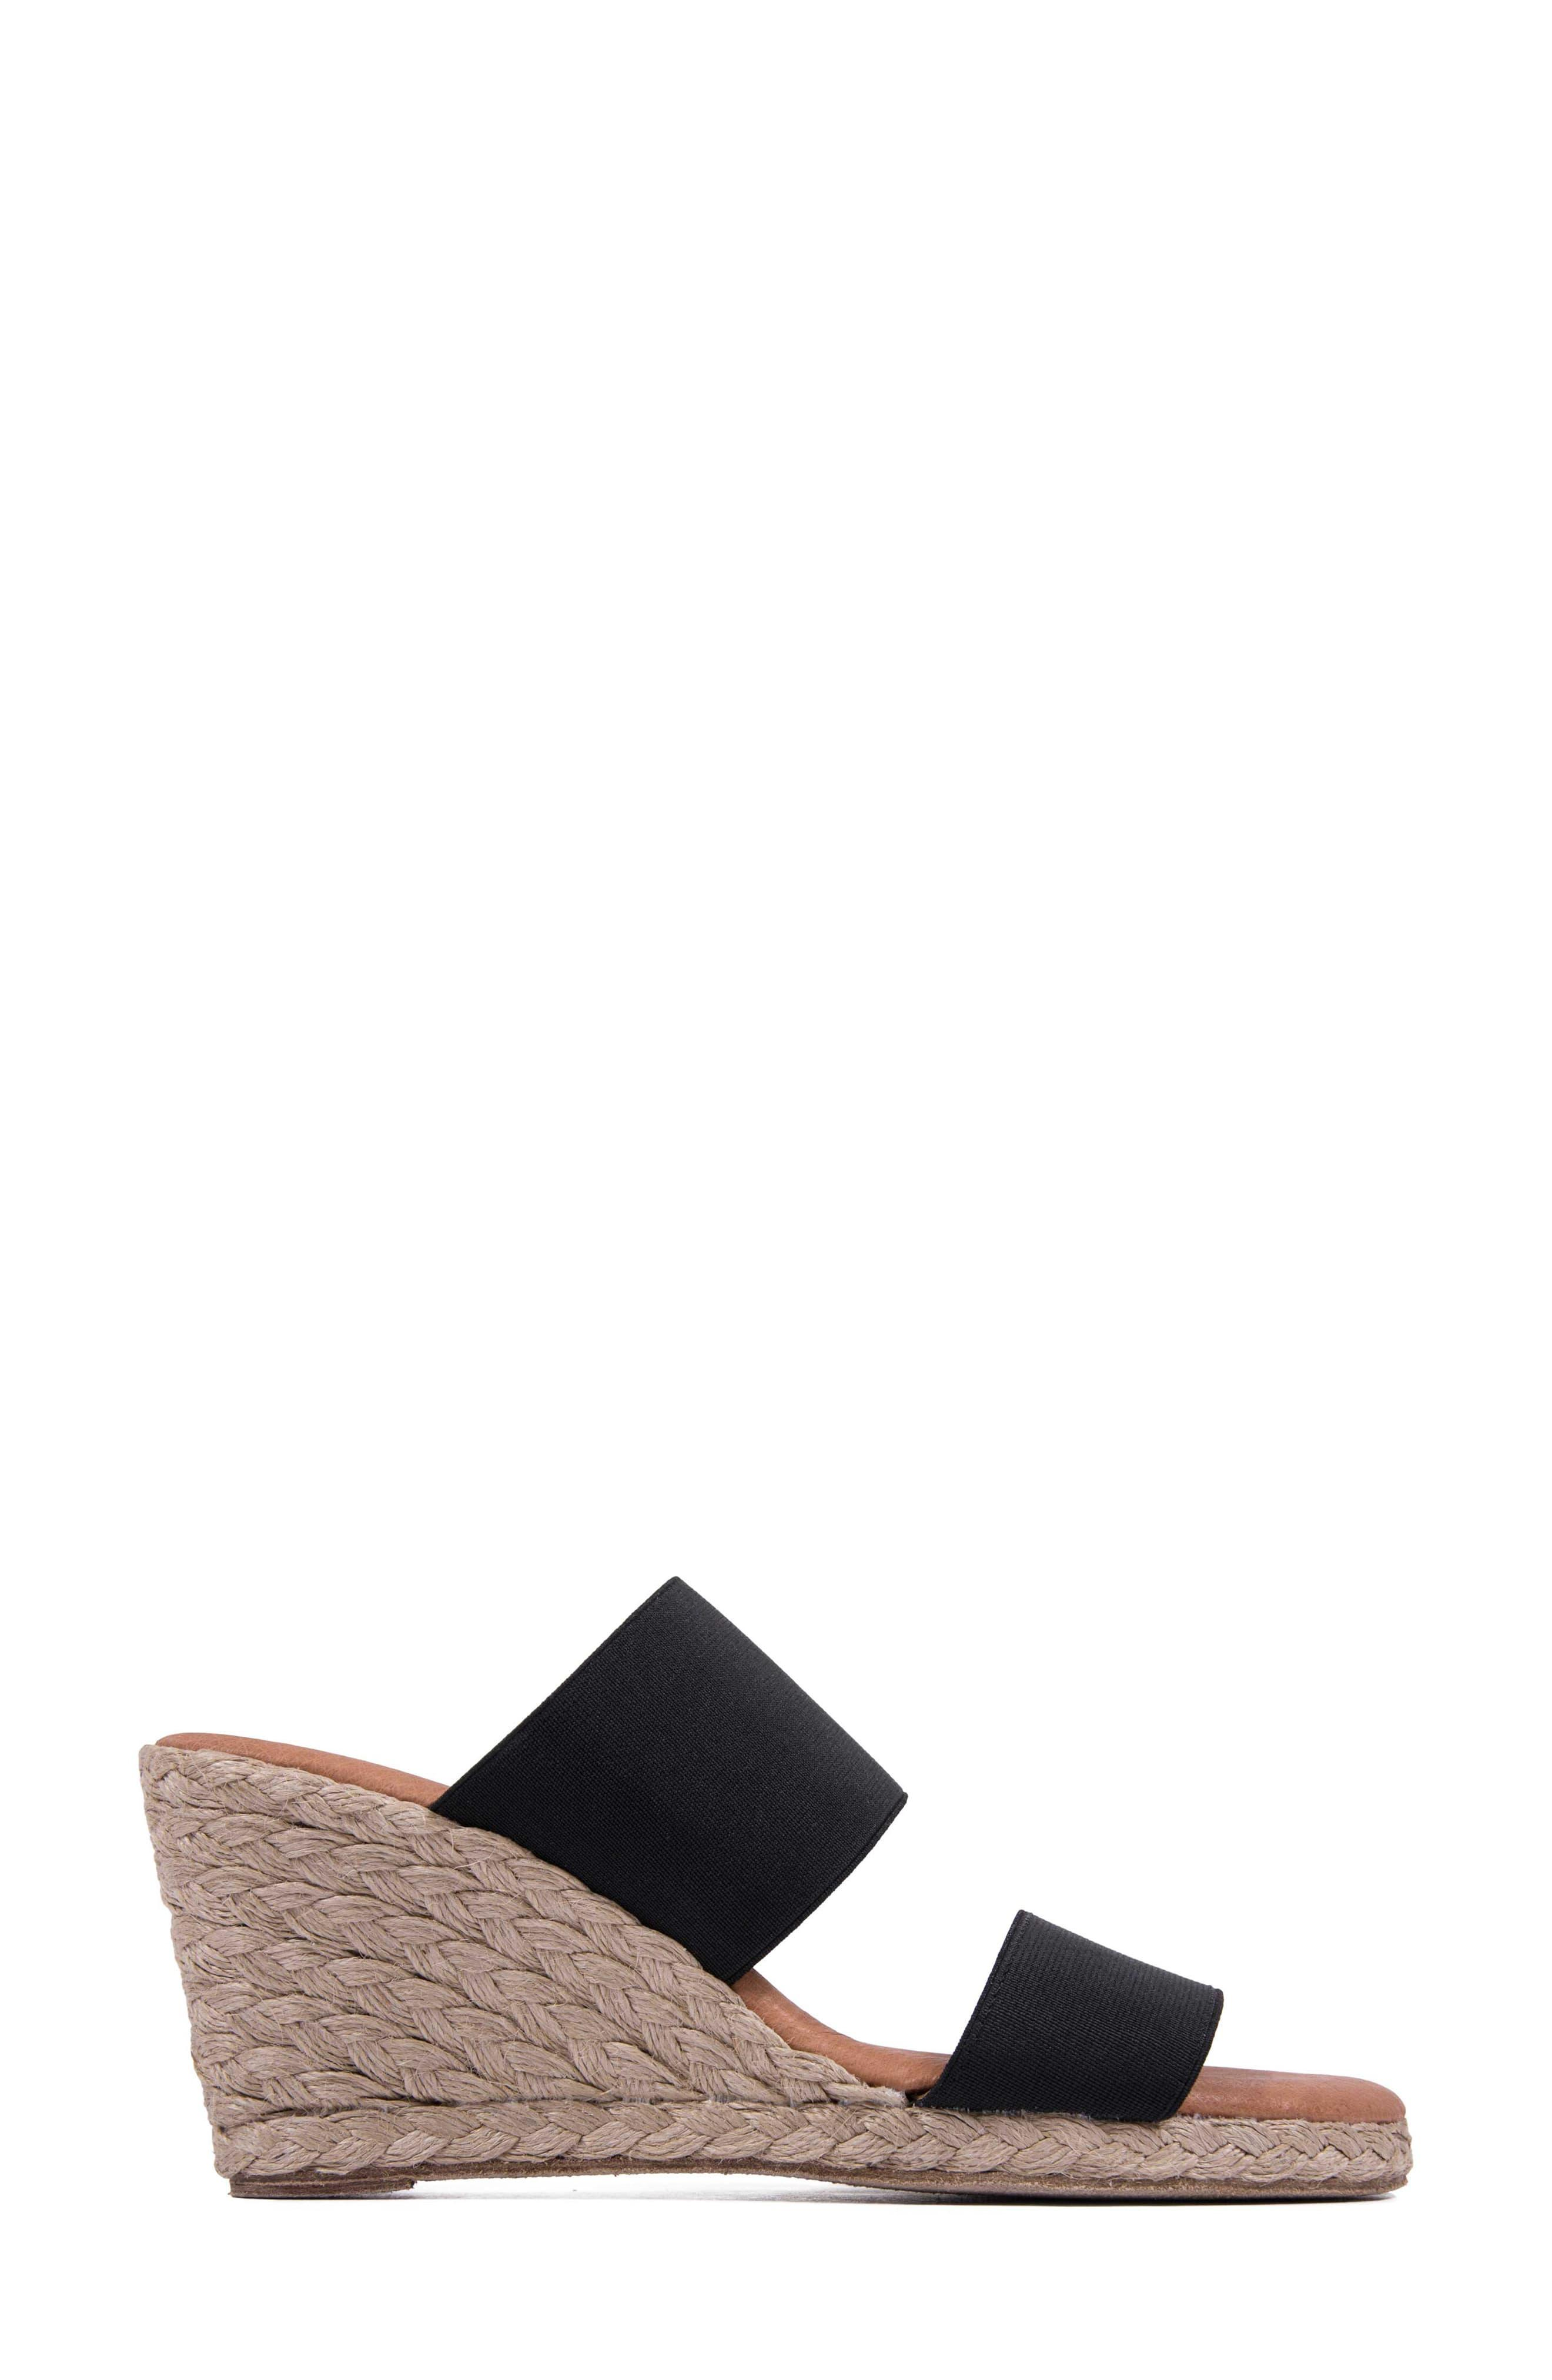 eed835dc777 Andre Assous Amalia Strappy Espadrille Wedge Slide Sandal in Black ...